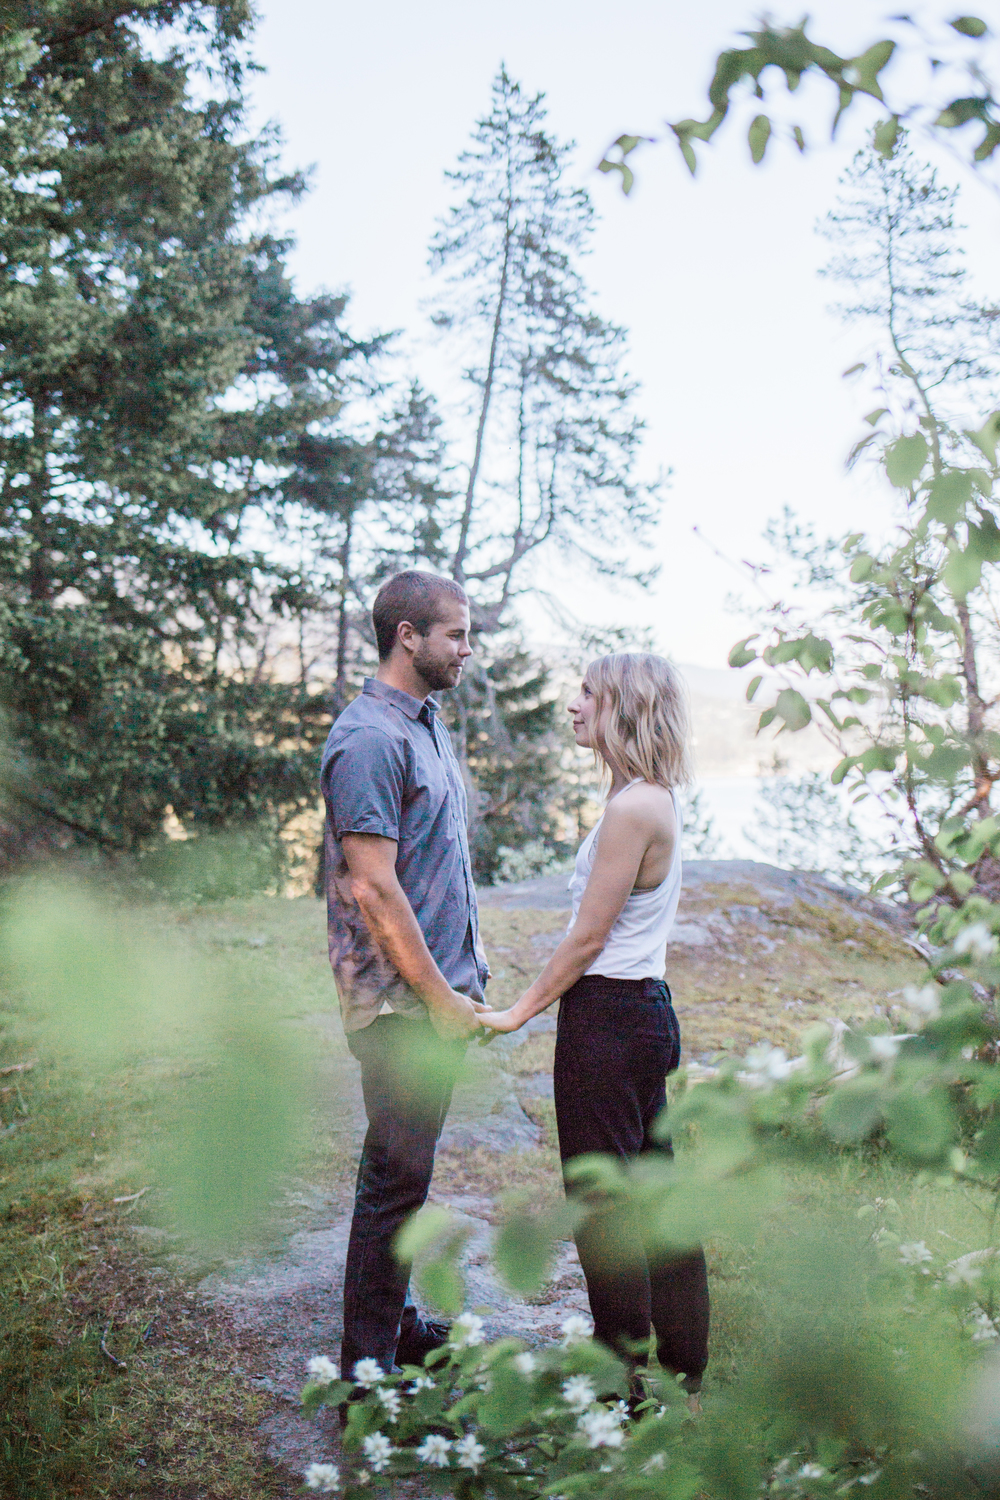 LightHousePark-Engagement-M&J-MintPhotography-5.jpg